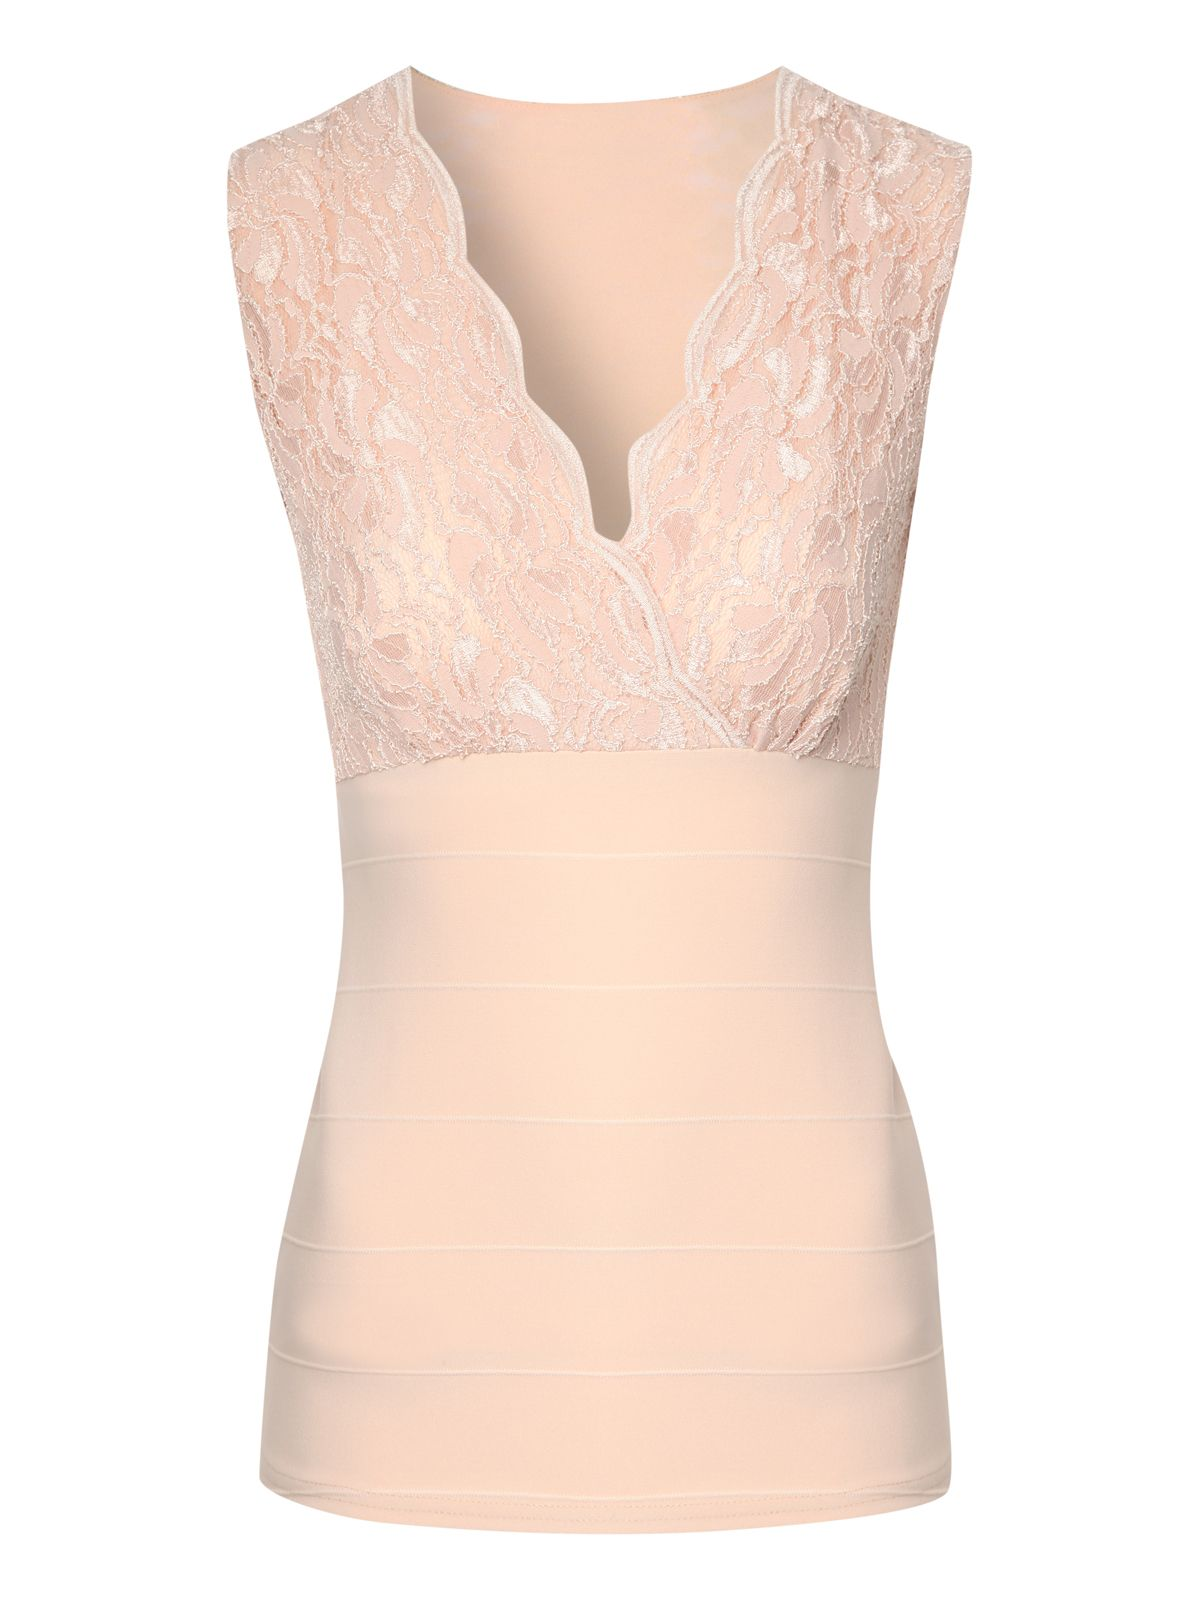 Lace bandage top